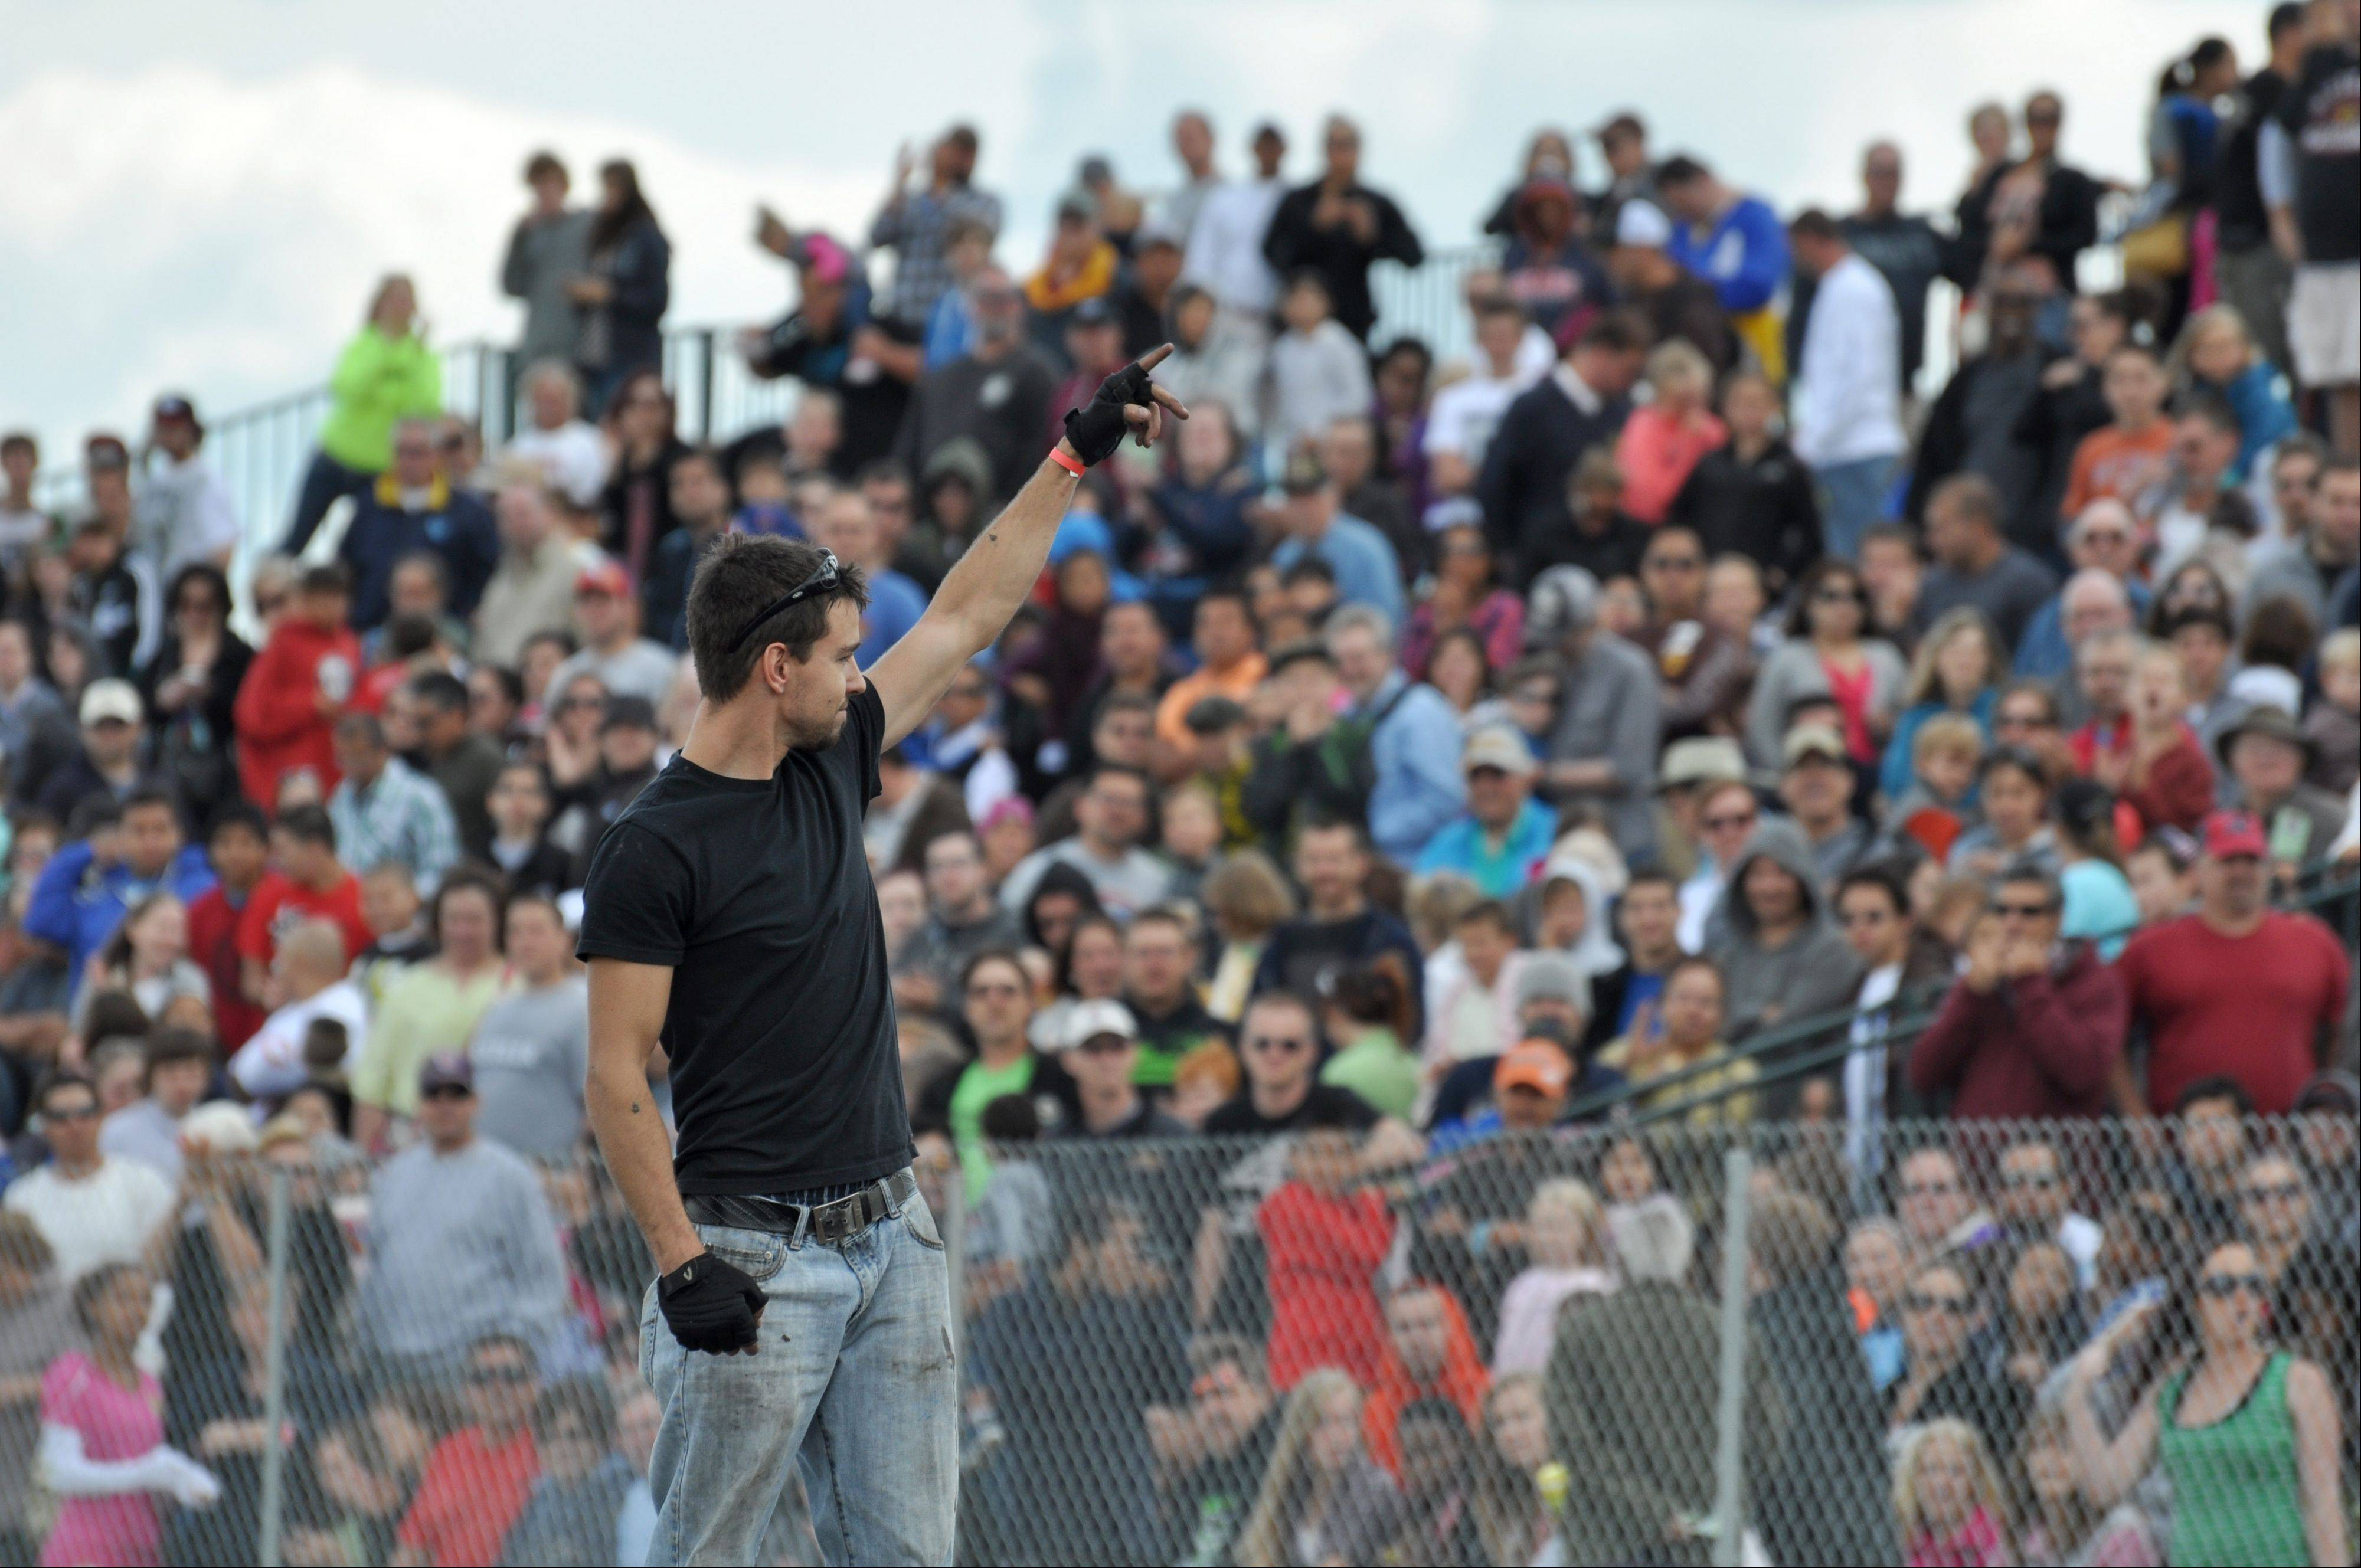 Chris Kniaz, of Des Plaines, draws applause from the crowd during the Destruction Derby at the Lake County Fair Sunday, July 28. Although Kniaz lost the derby he was awarded most aggressive driver and was a crowd favorite.